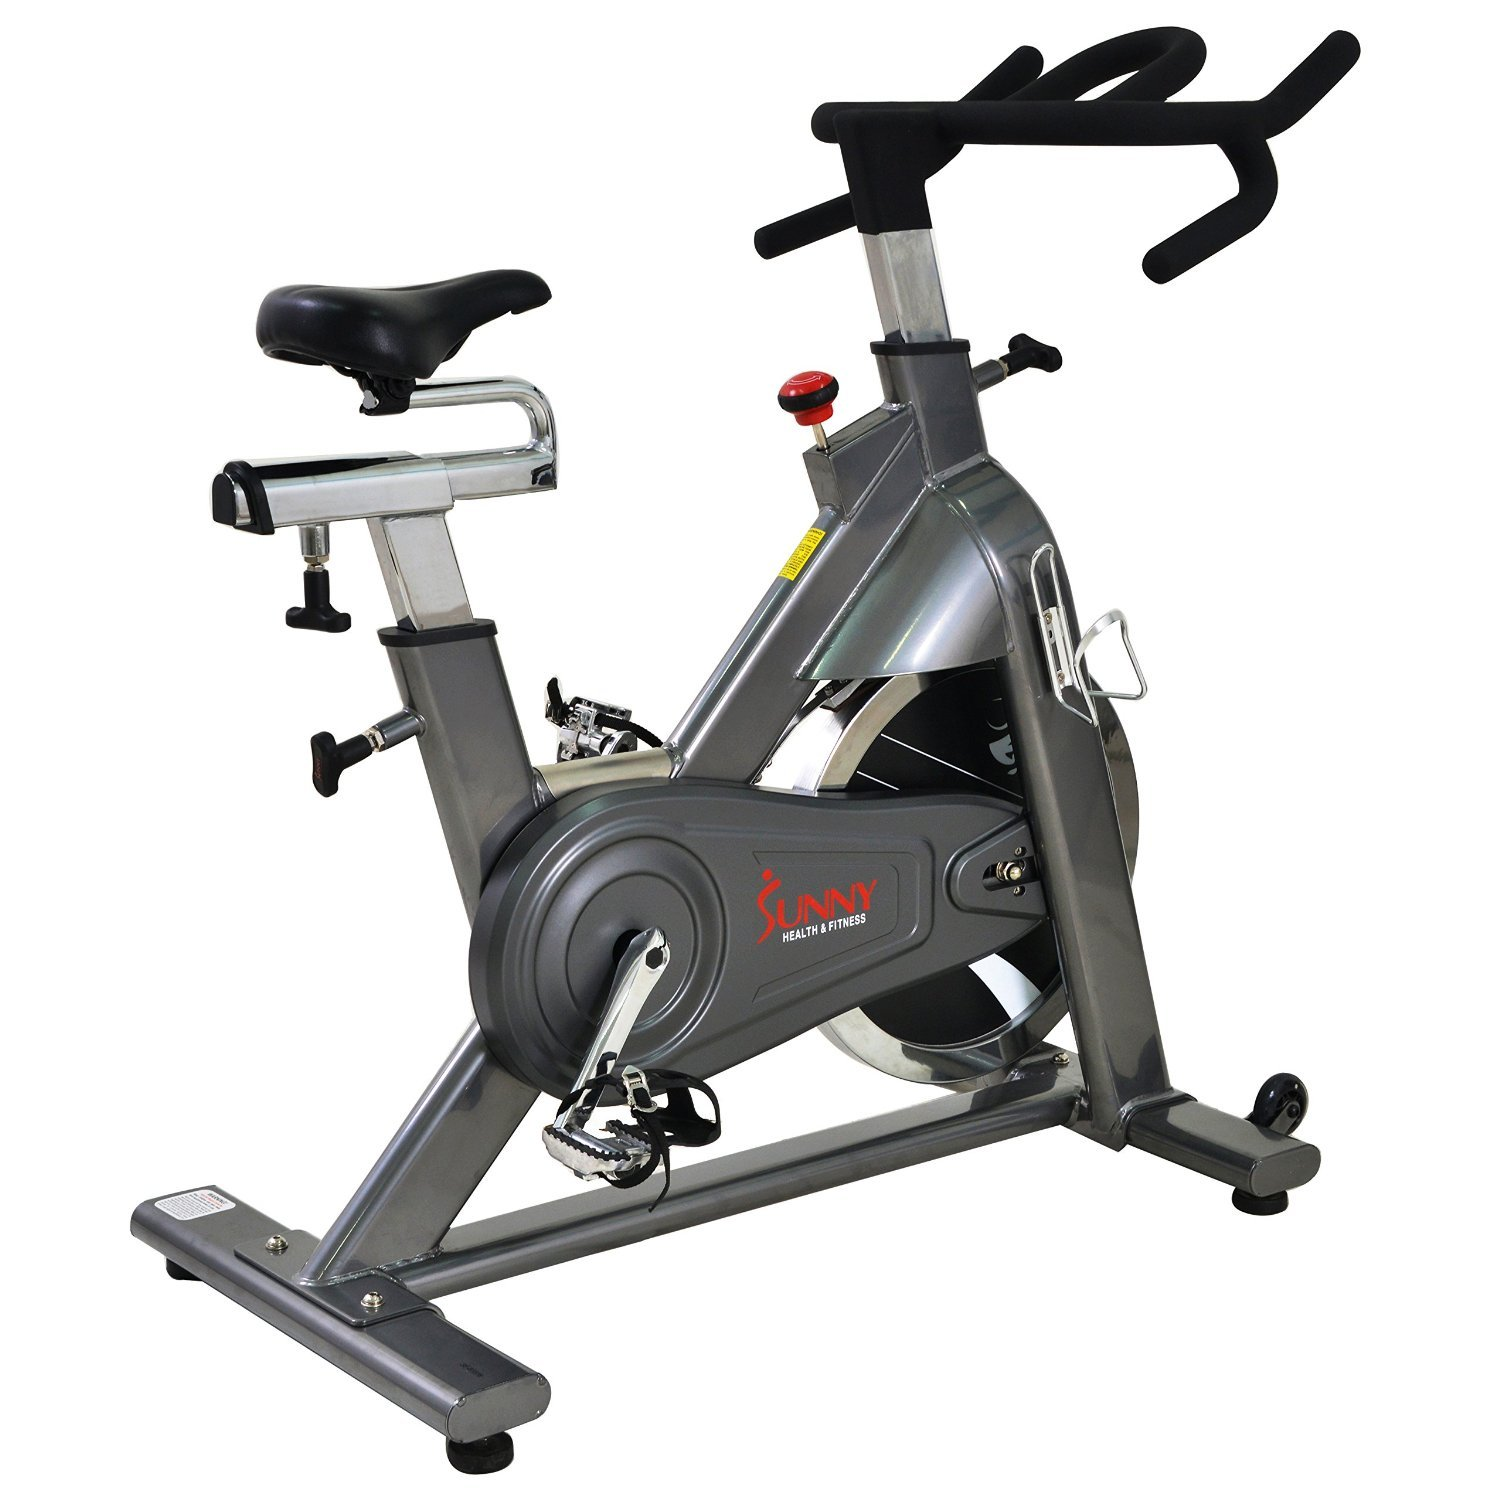 Heavy Duty Chain Drive Indoor Cycling Exercise Bike